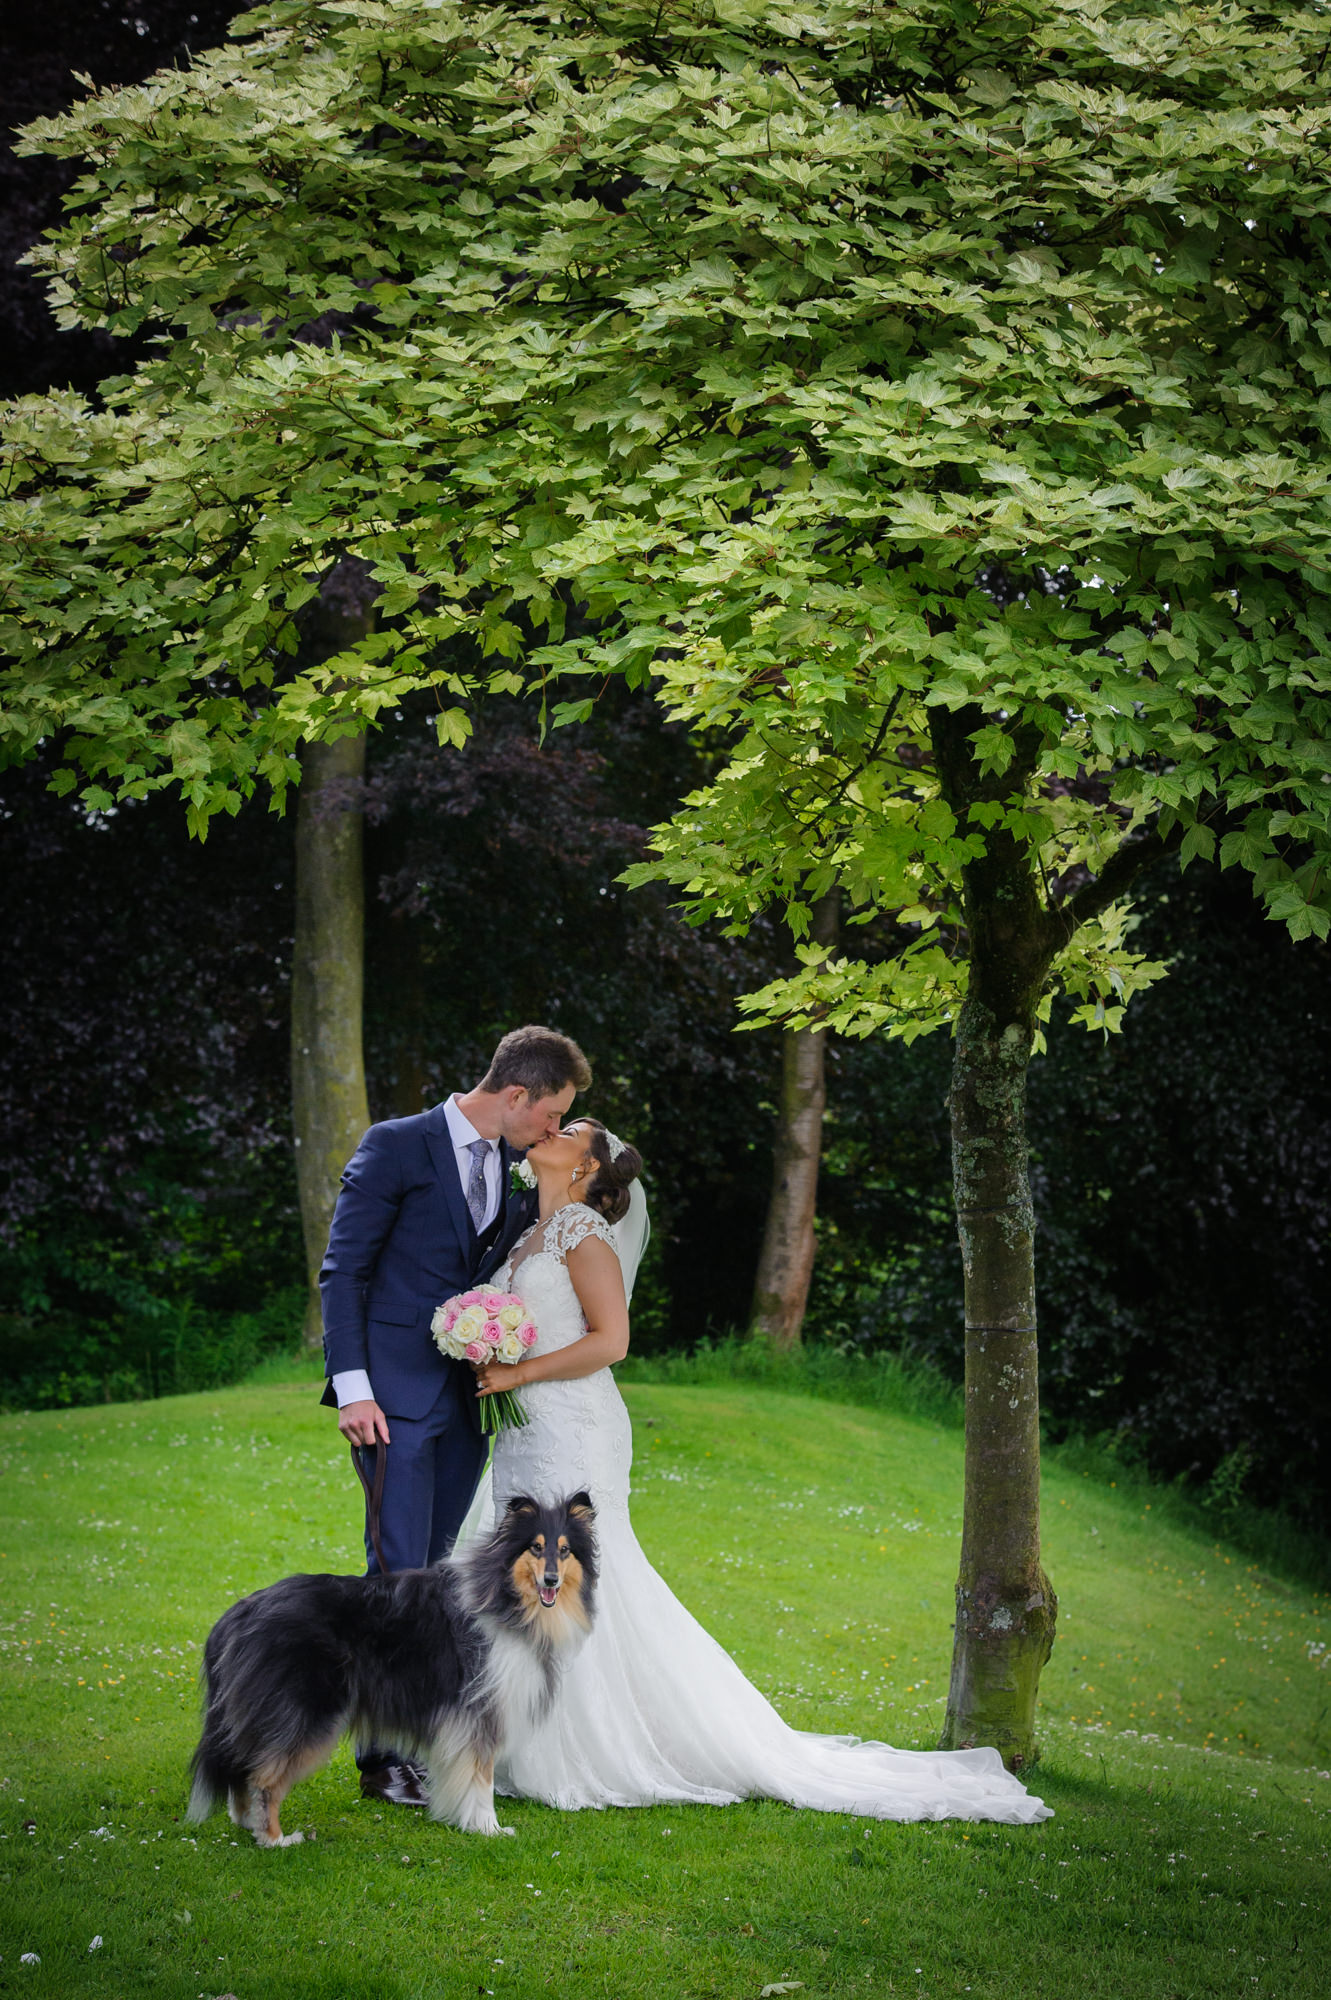 Bride and groom with their dog at The inn at Whitewell